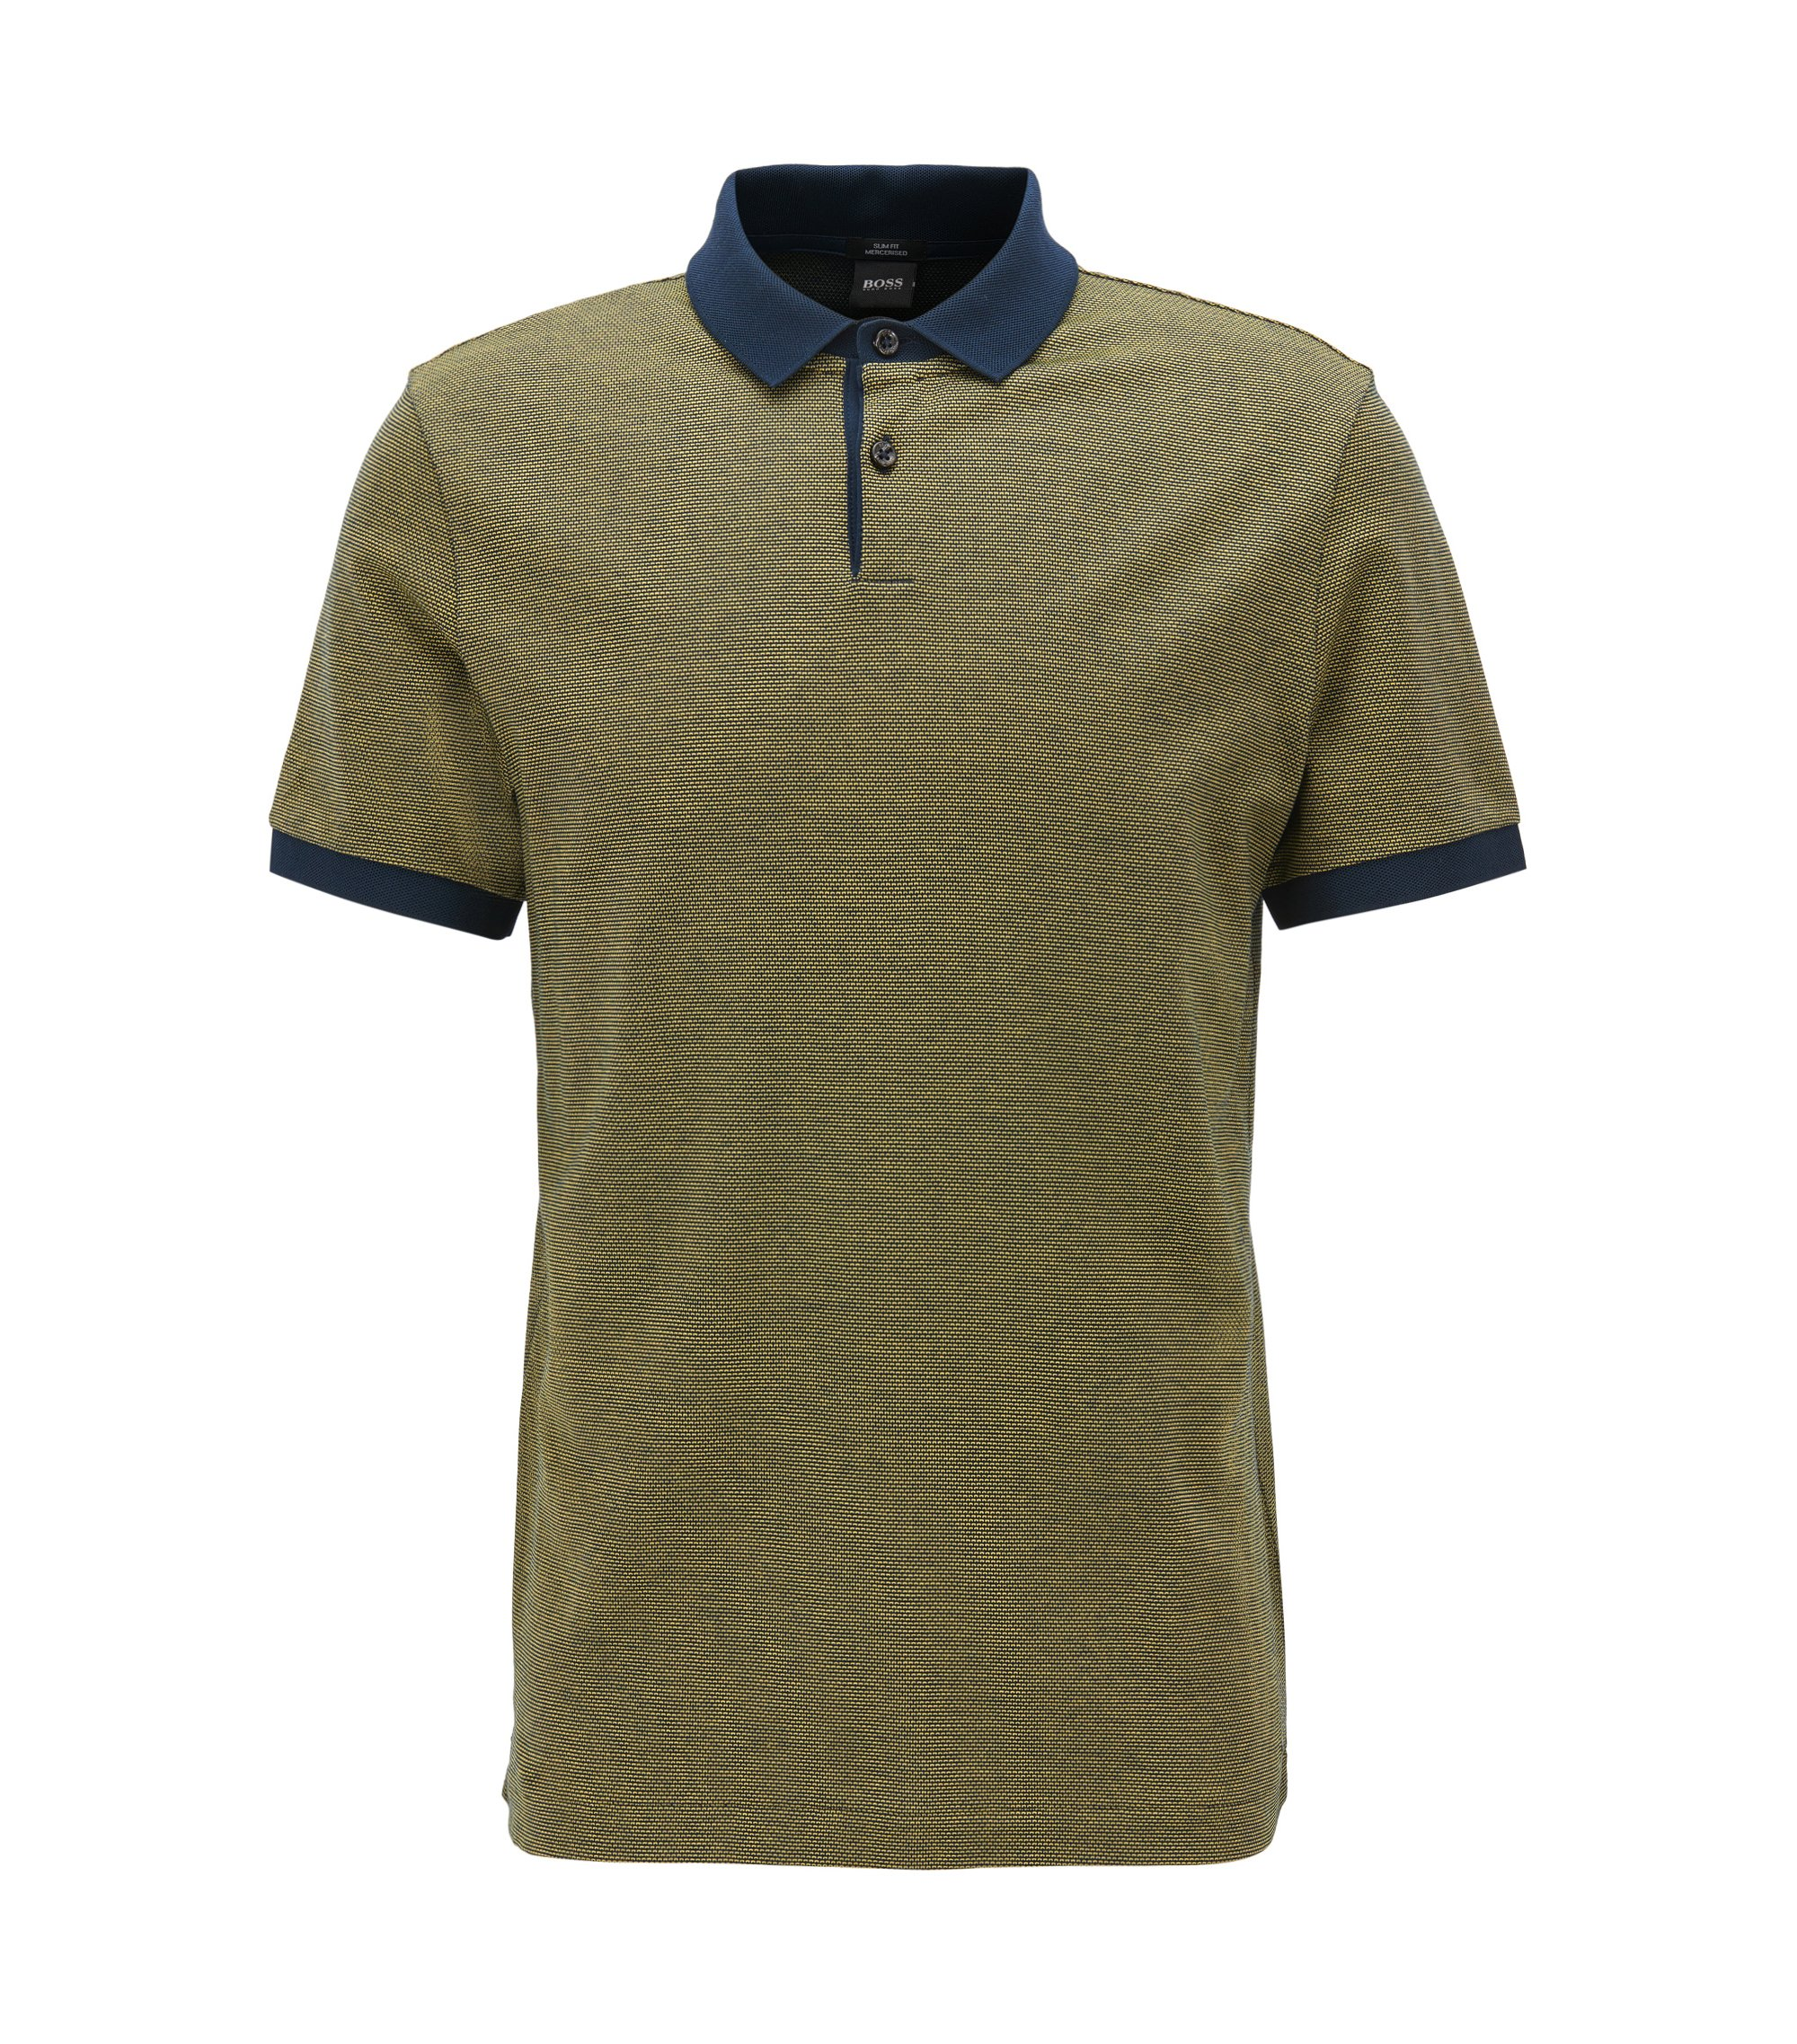 Mercerized Cotton Polo Shirt, Slim Fit | Penrose, Yellow